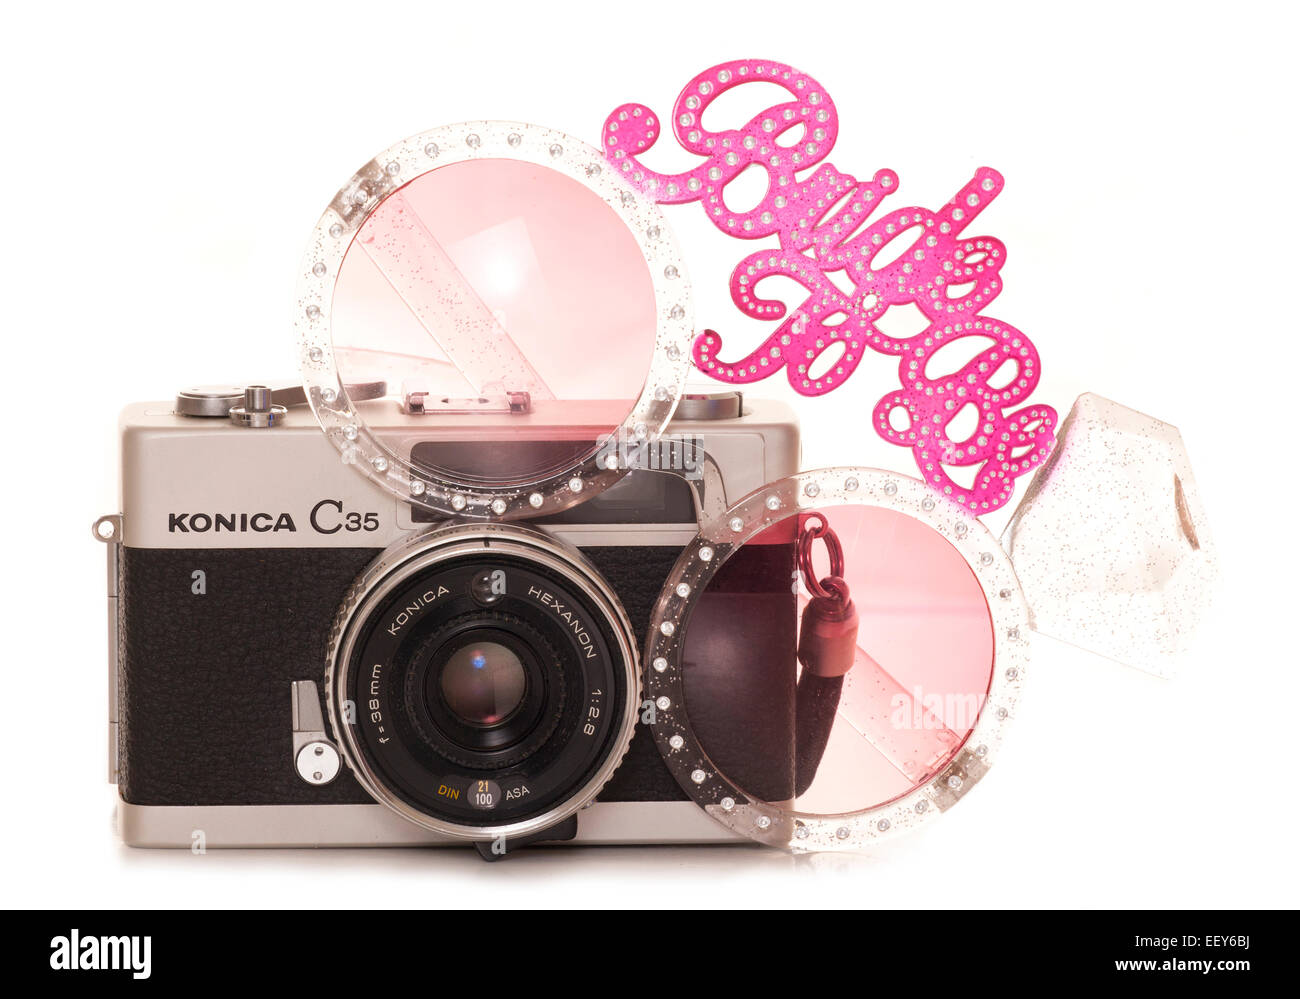 vintage slr film camera with bride to be sunglasses cutout - Stock Image